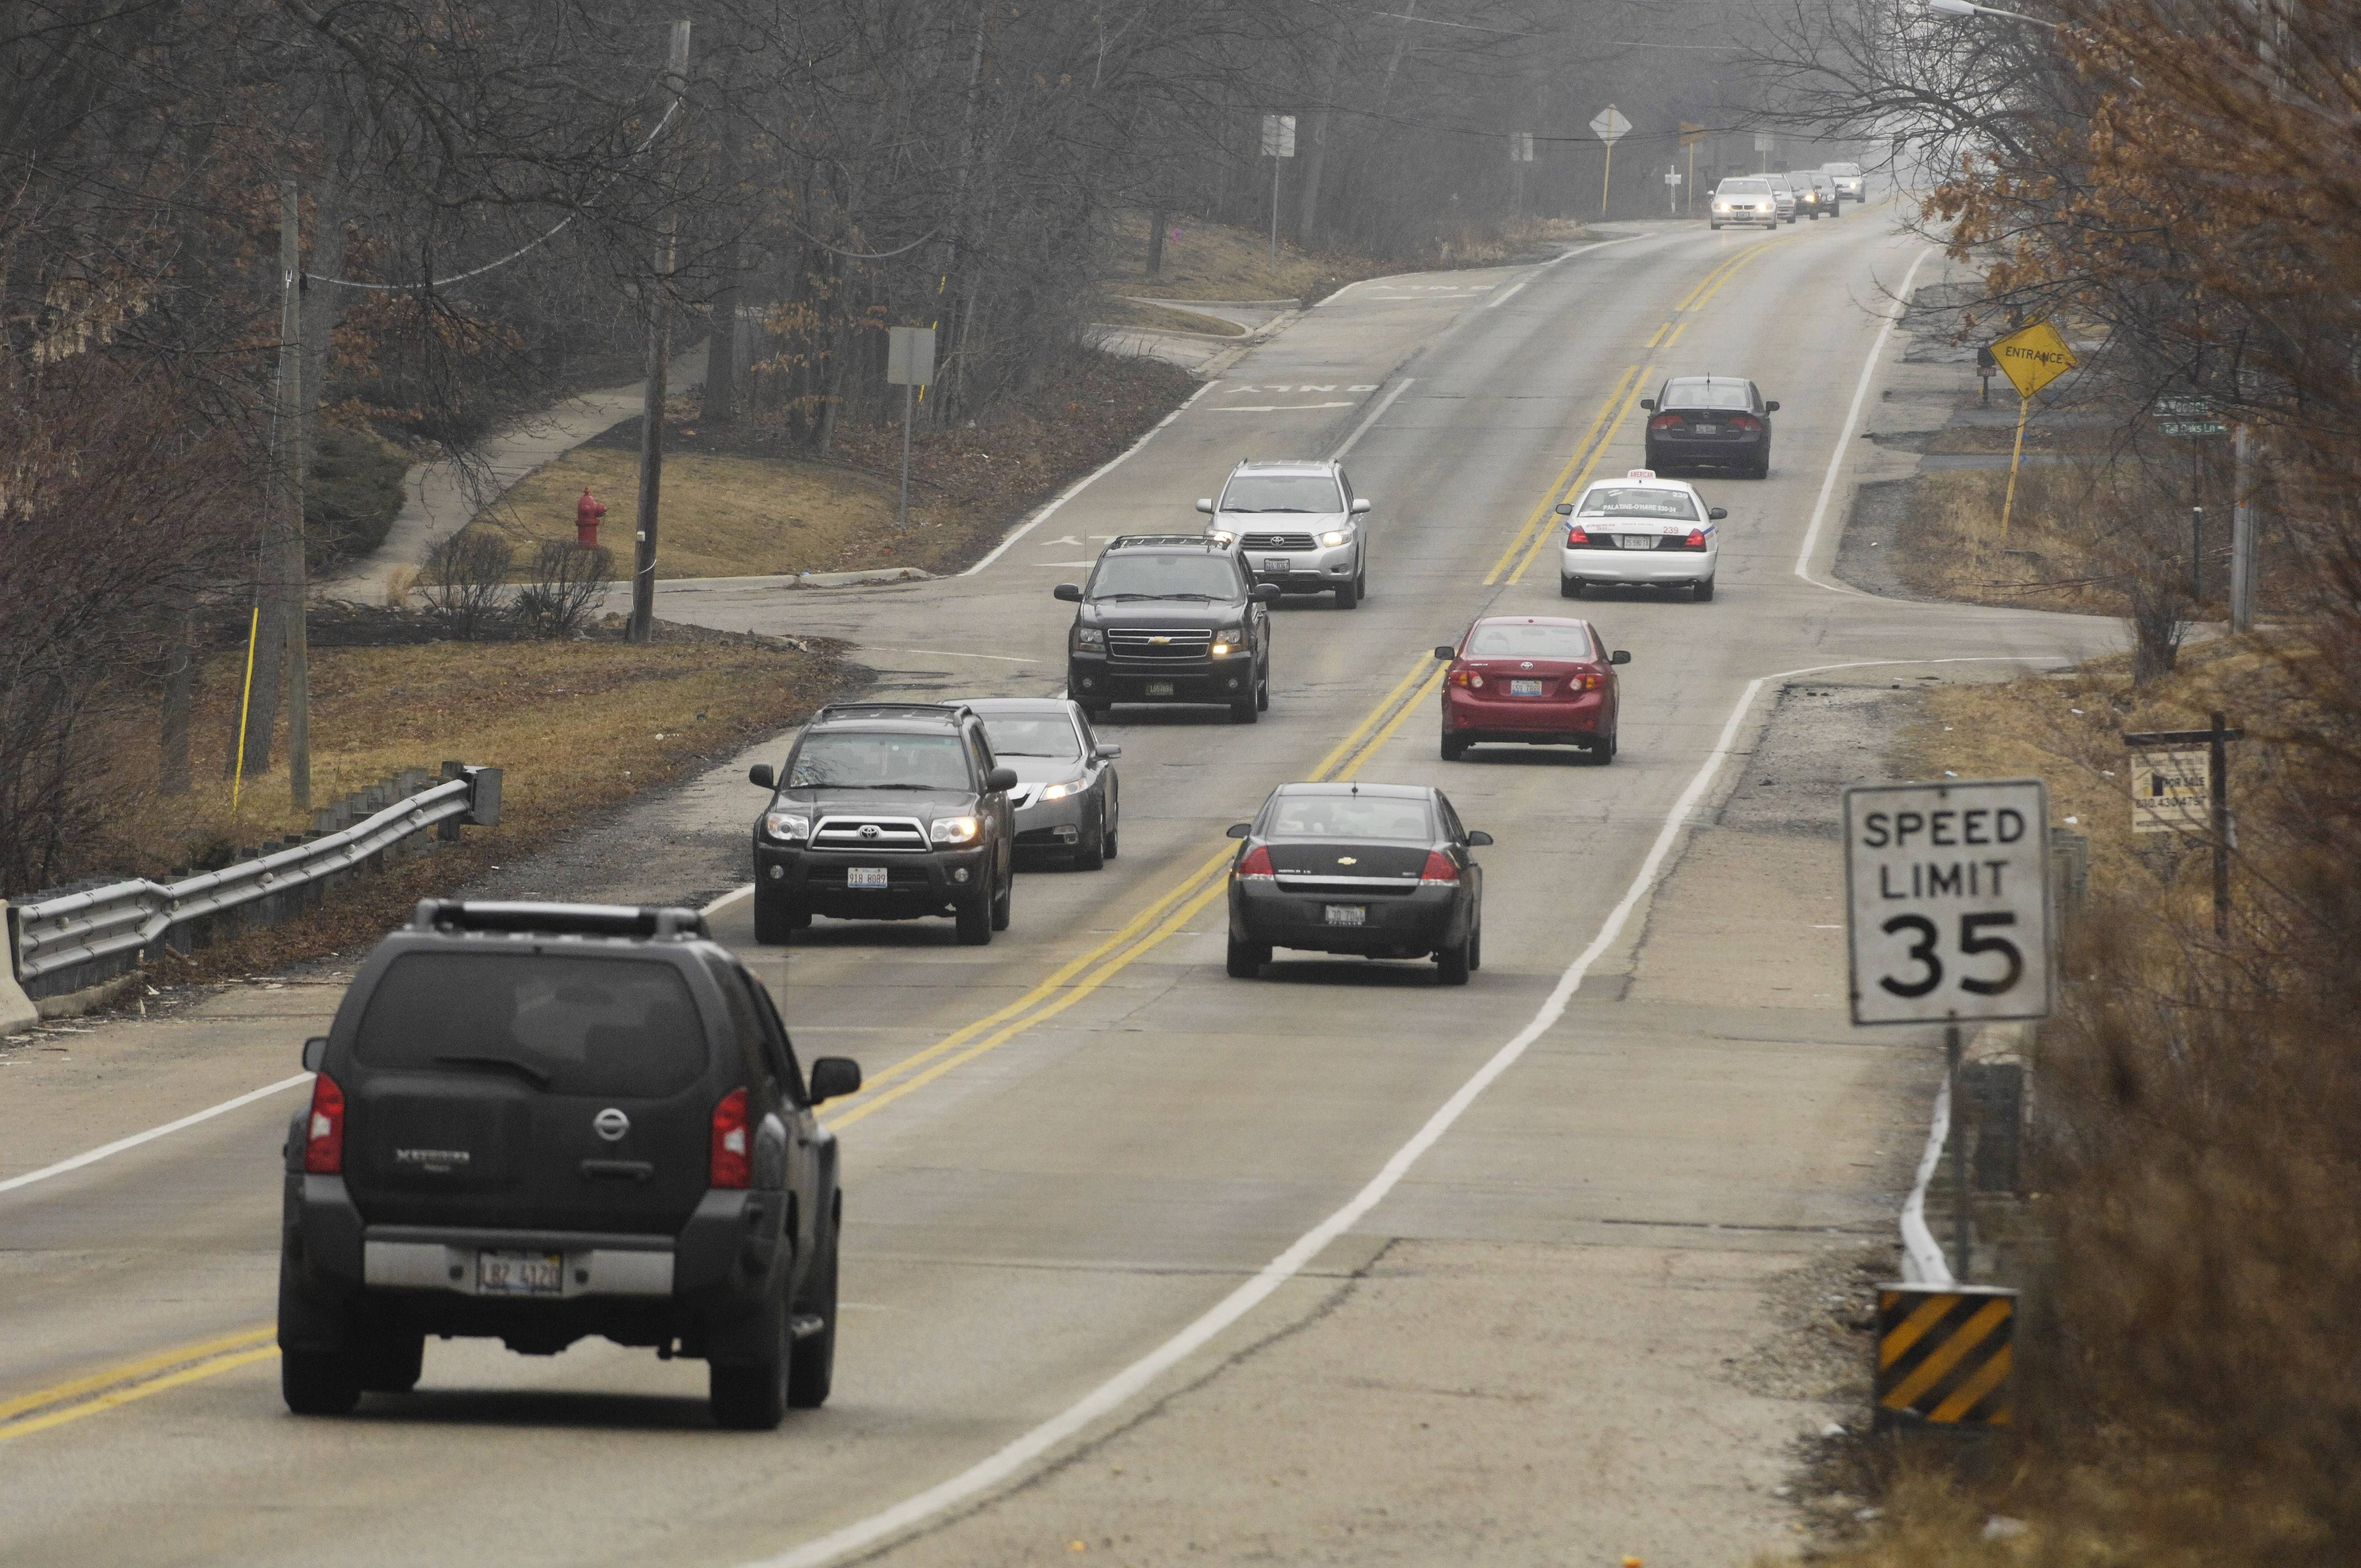 Rolling Meadows has rejected plans for expanding Meacham Road to three lanes between Emerson Avenue and Algonquin Road.